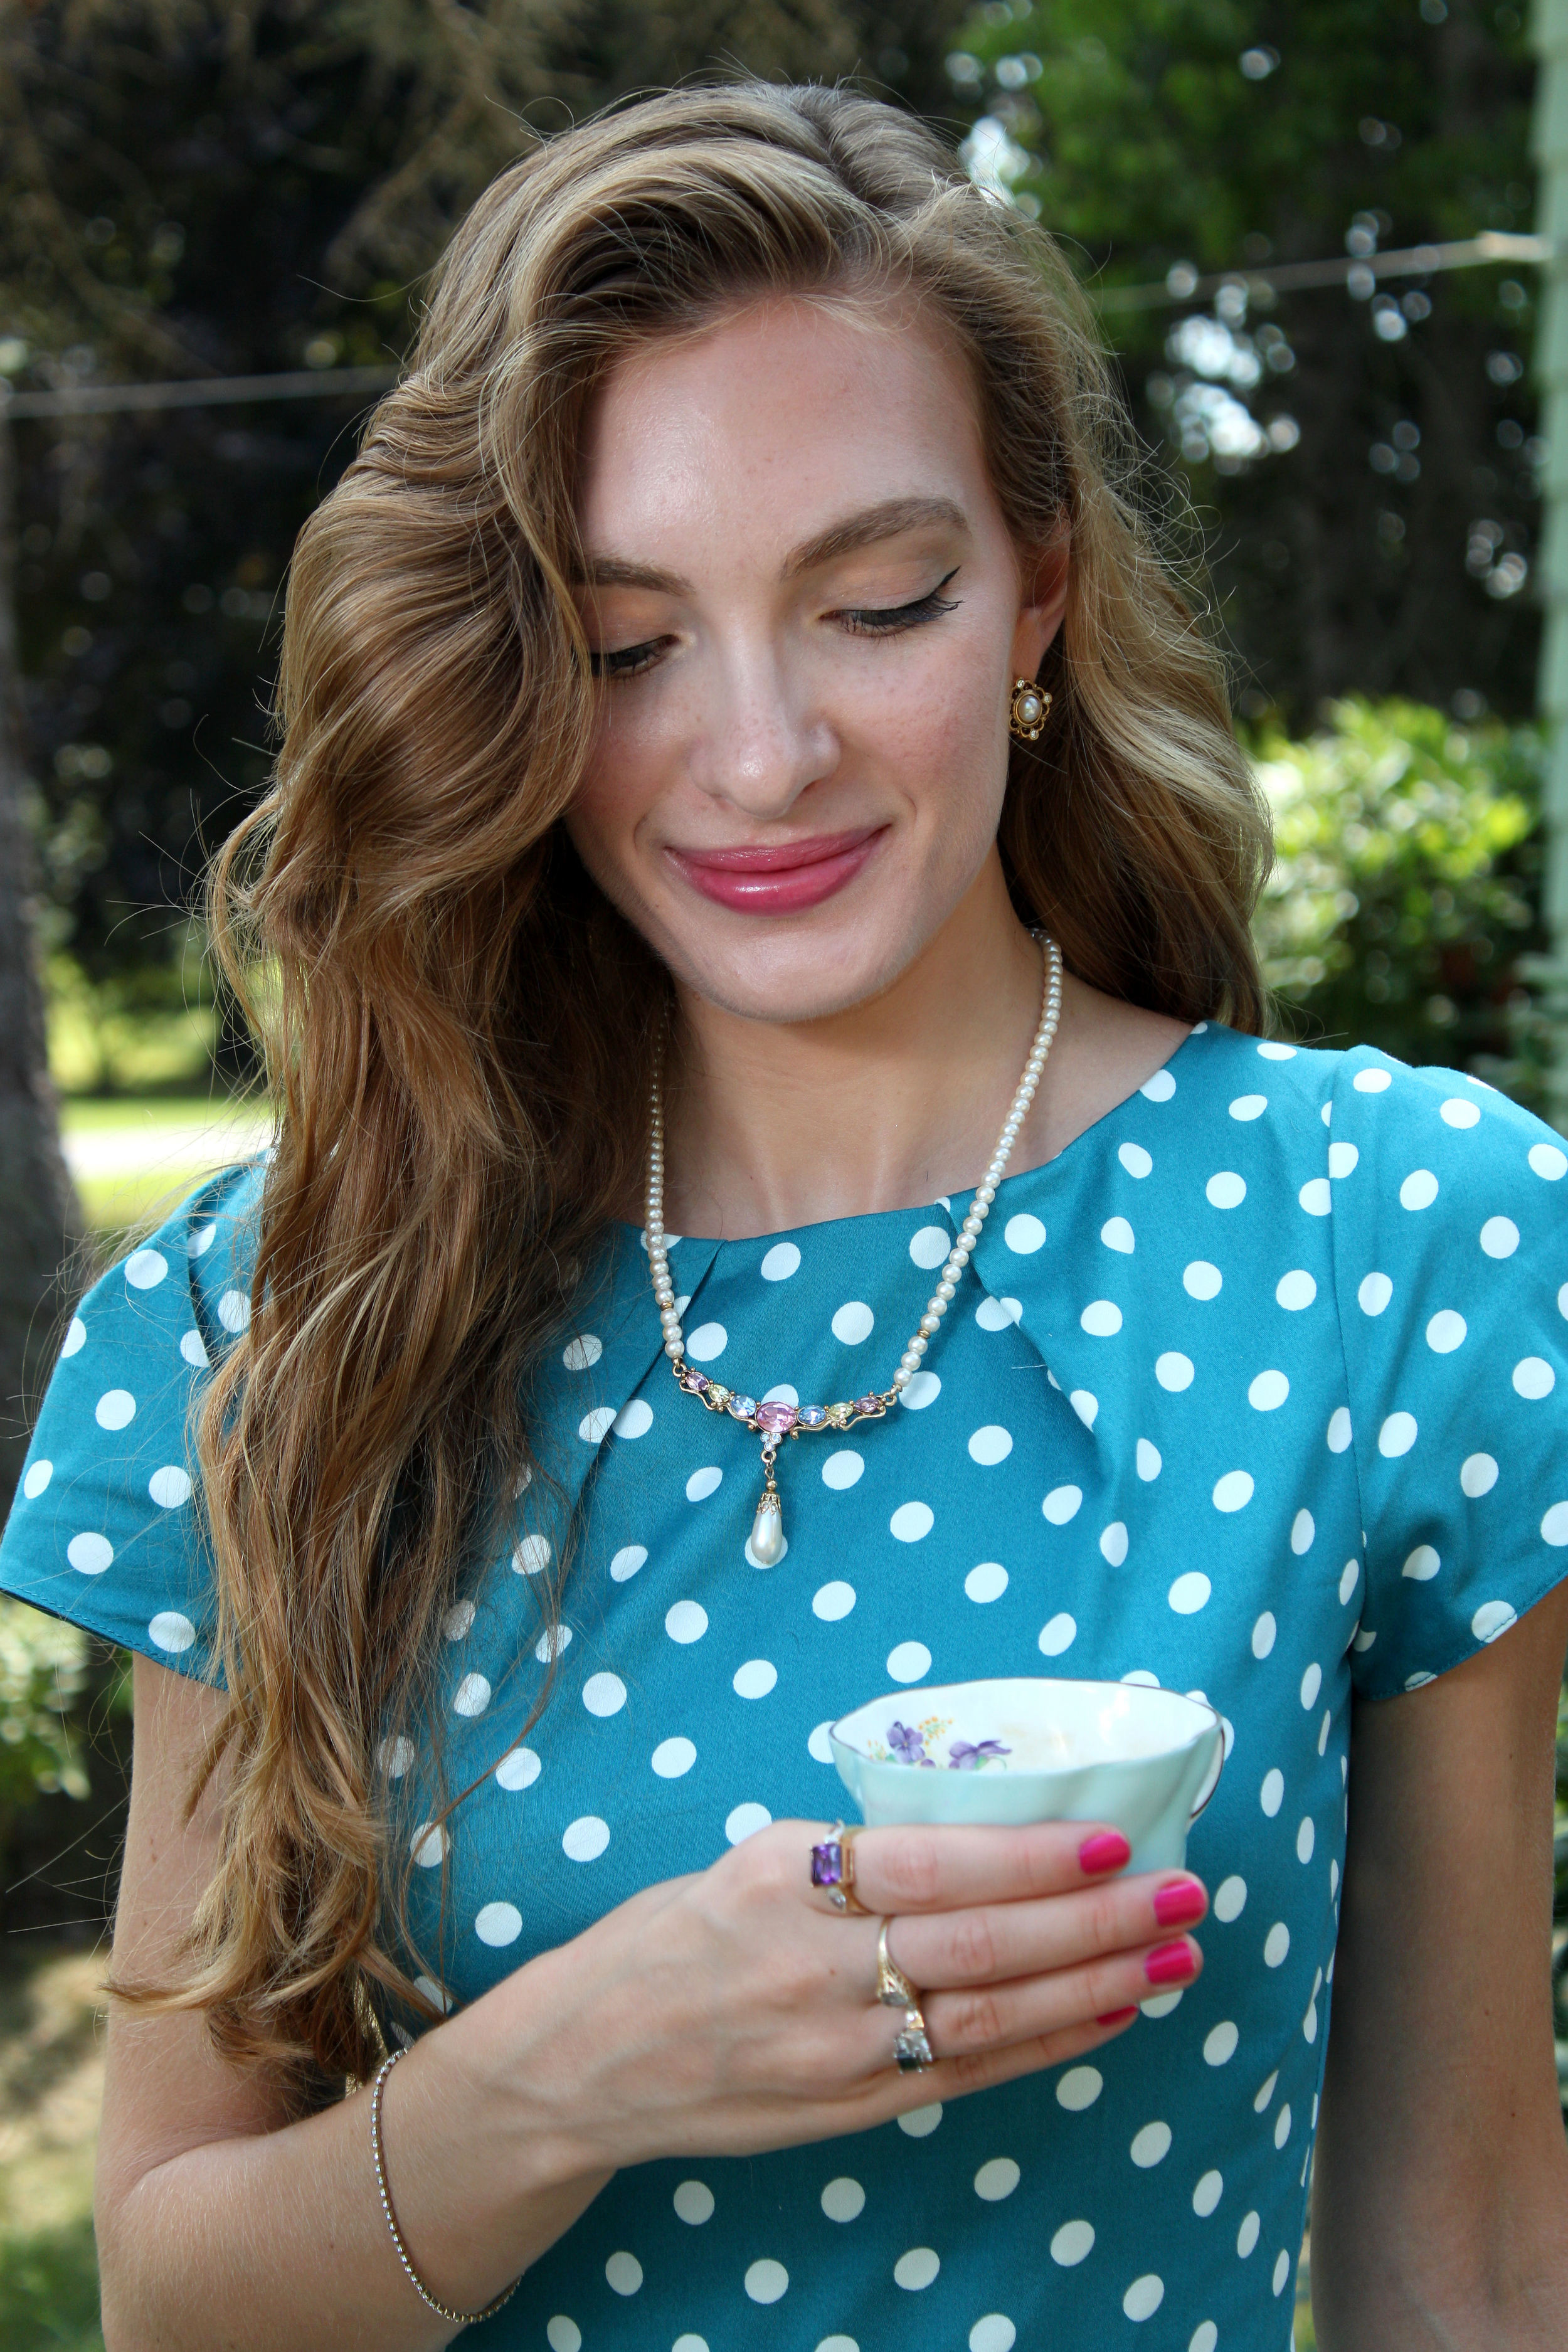 polka dots and jewlery